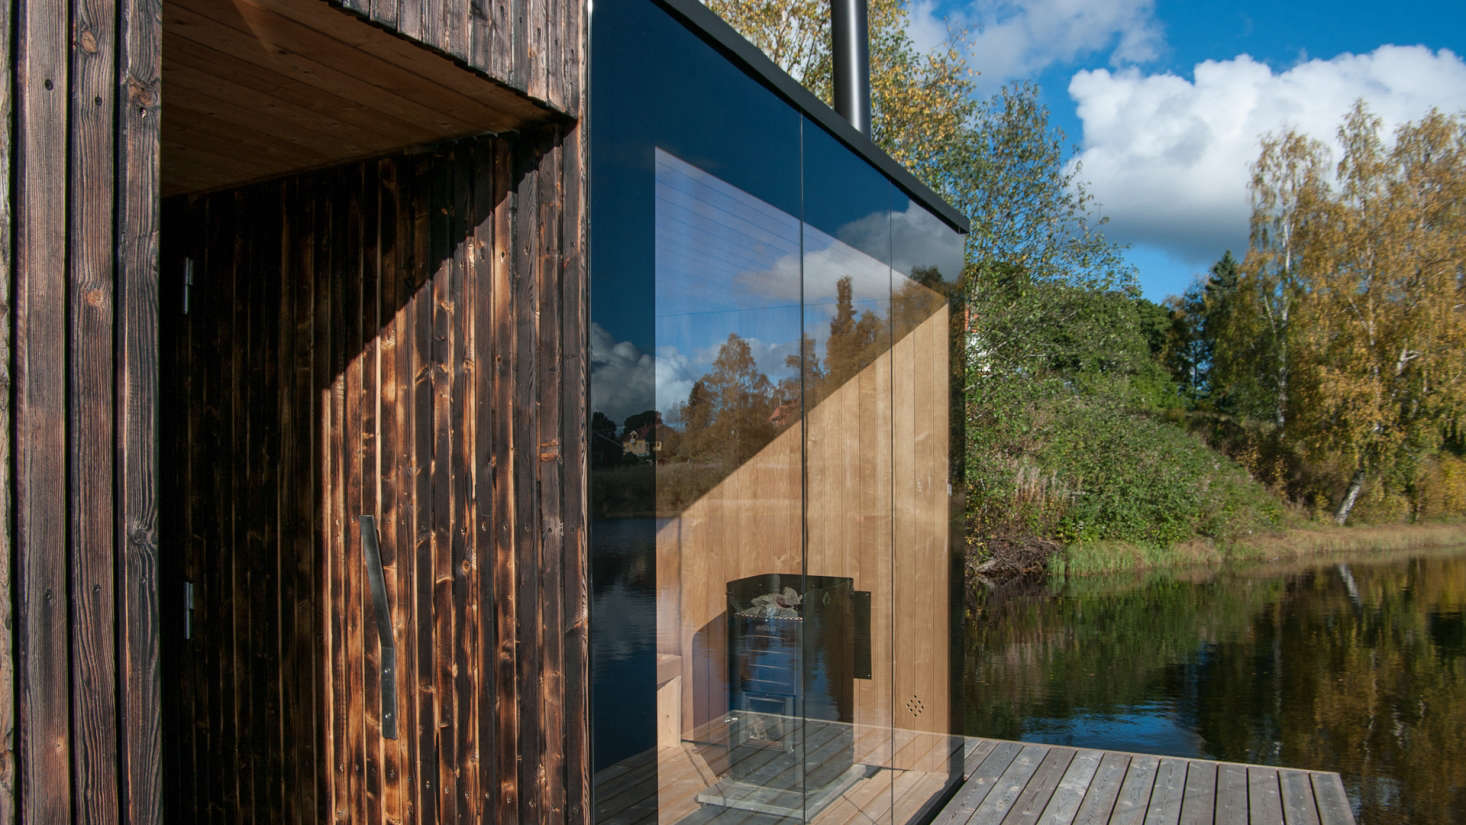 A transparent wall of glass faces the lake, inviting introspection and a vantage point to interact with the landscape &#8